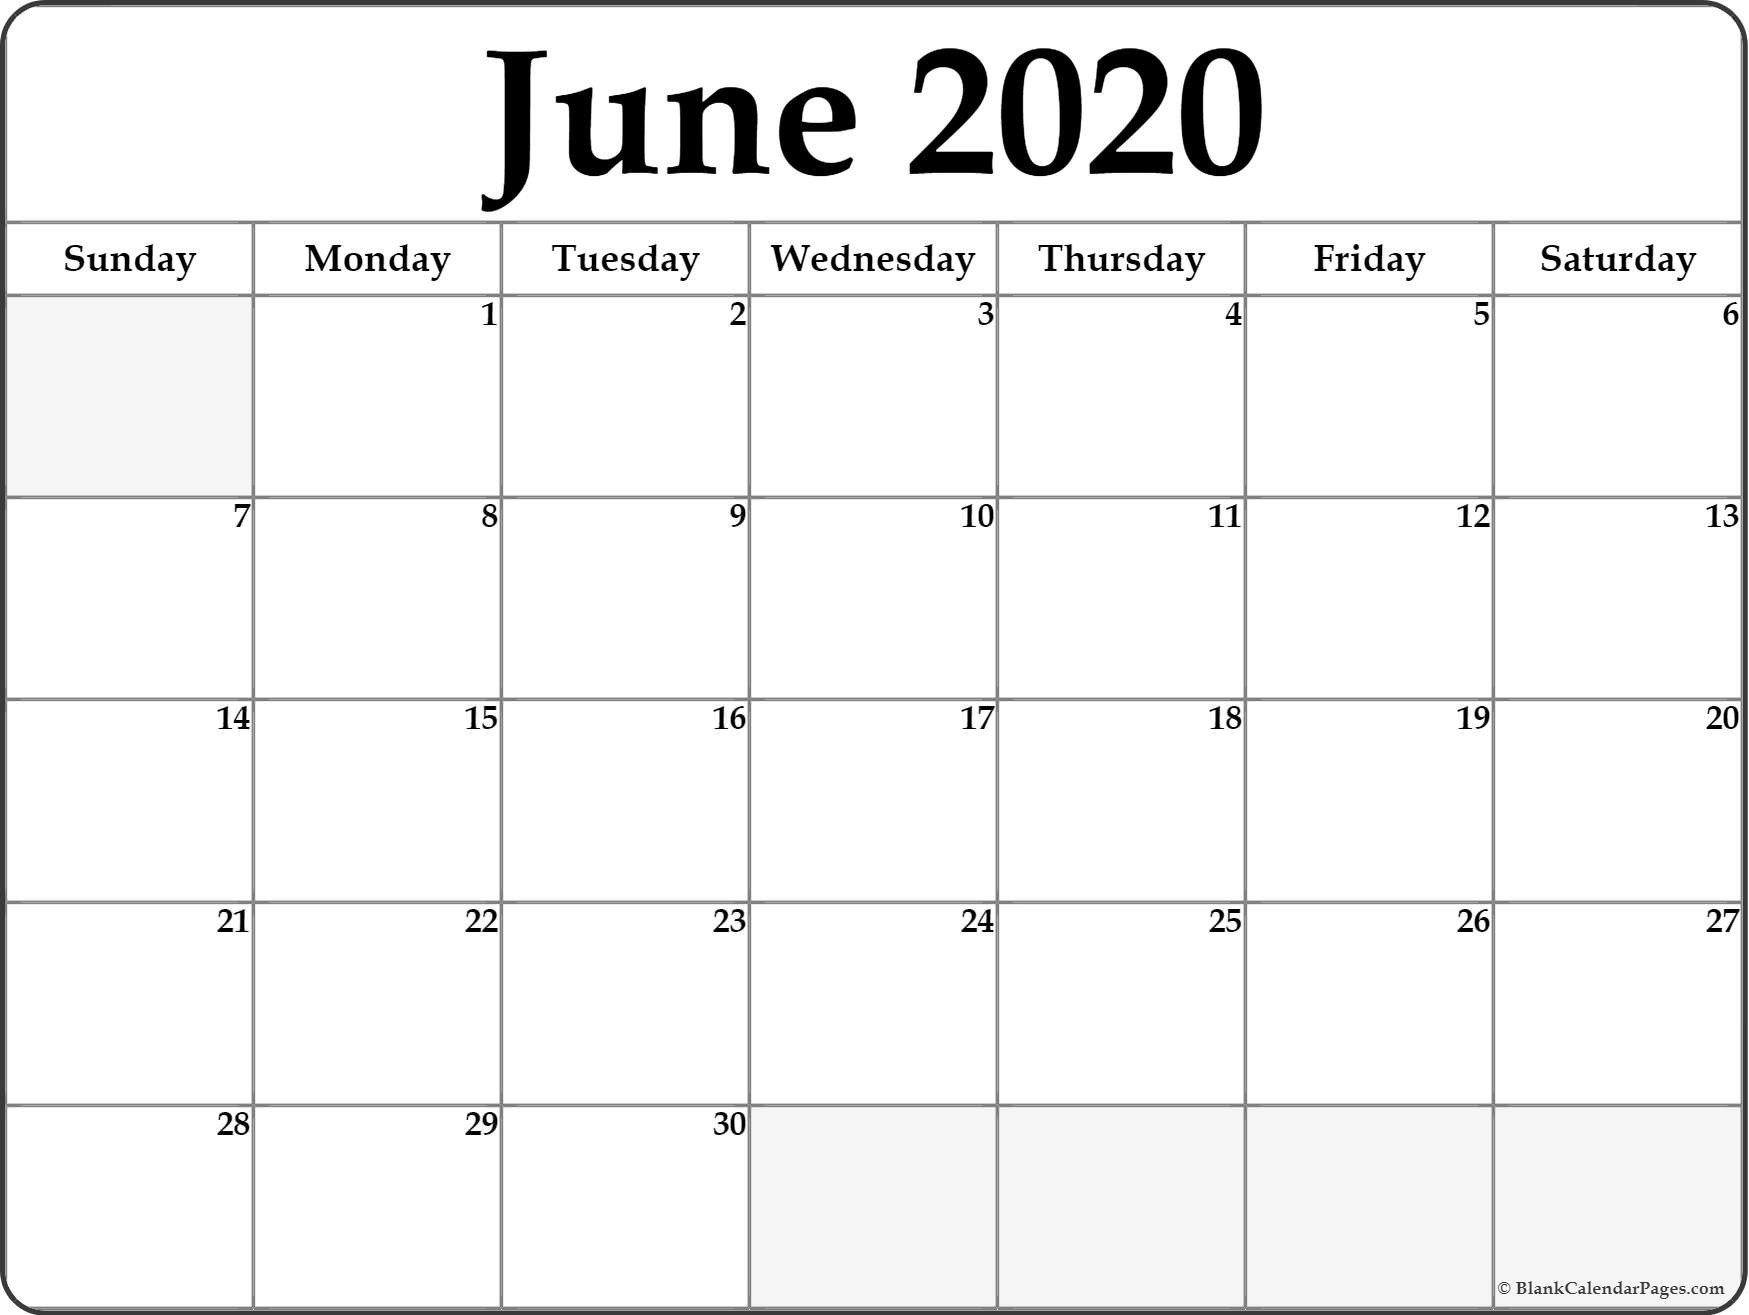 June 2020 Calendar | Free Printable Monthly Calendars inside Printable June 2020 Calendar